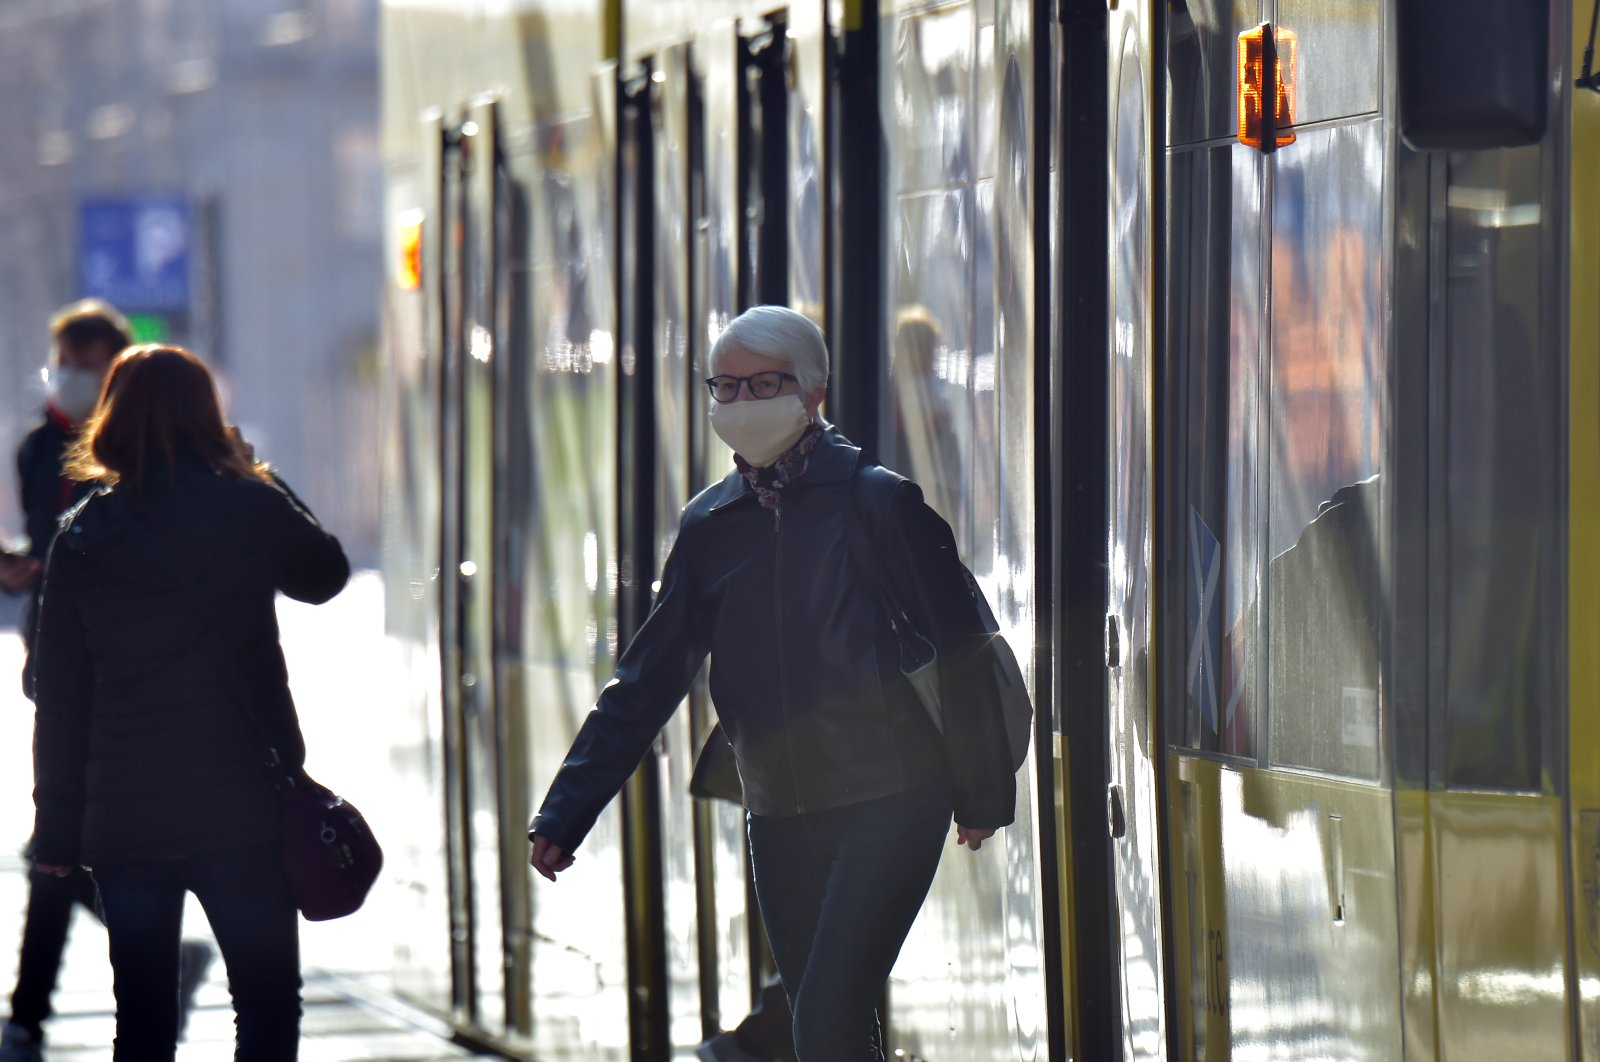 People on public transport wear protective masks, as the spread of COVID-19 continues in Dresden, Germany, April 20, 2020. (Reuters Photo)